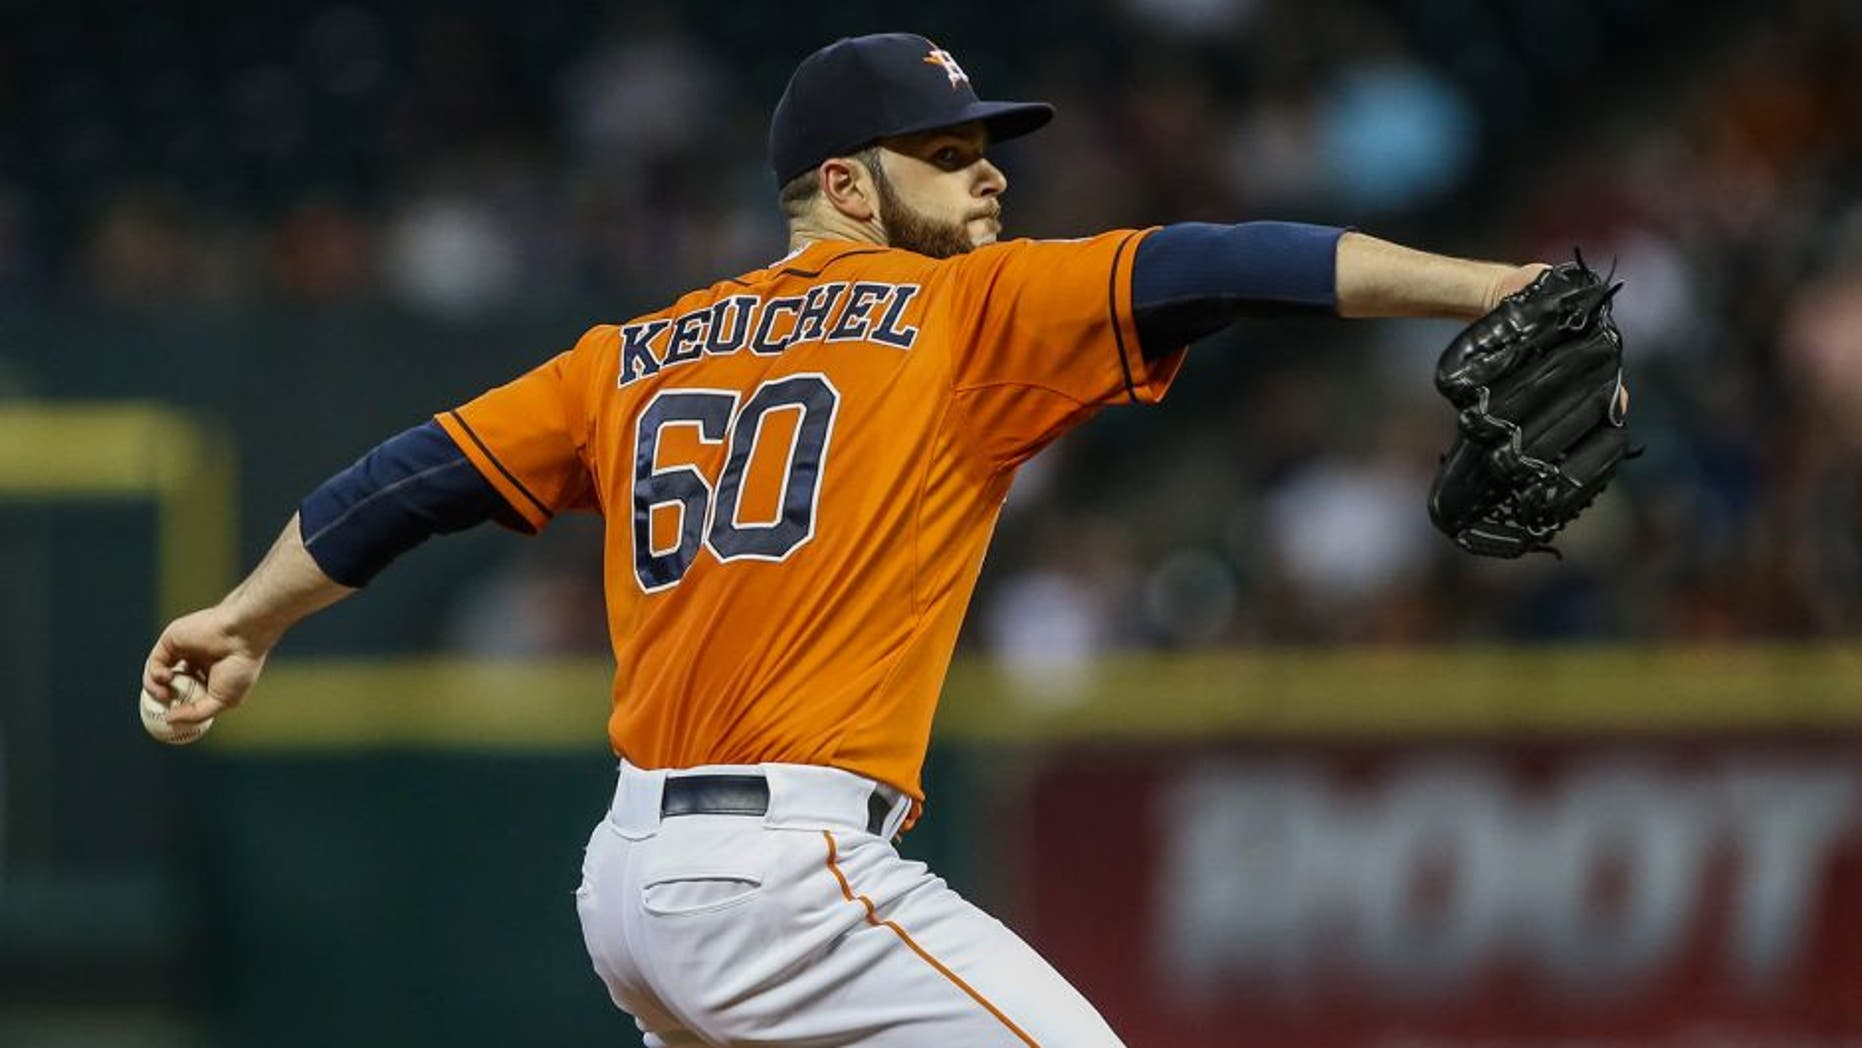 May 15, 2015; Houston, TX, USA; Houston Astros starting pitcher Dallas Keuchel (60) pitches during the third inning against the Toronto Blue Jays at Minute Maid Park. Mandatory Credit: Troy Taormina-USA TODAY Sports